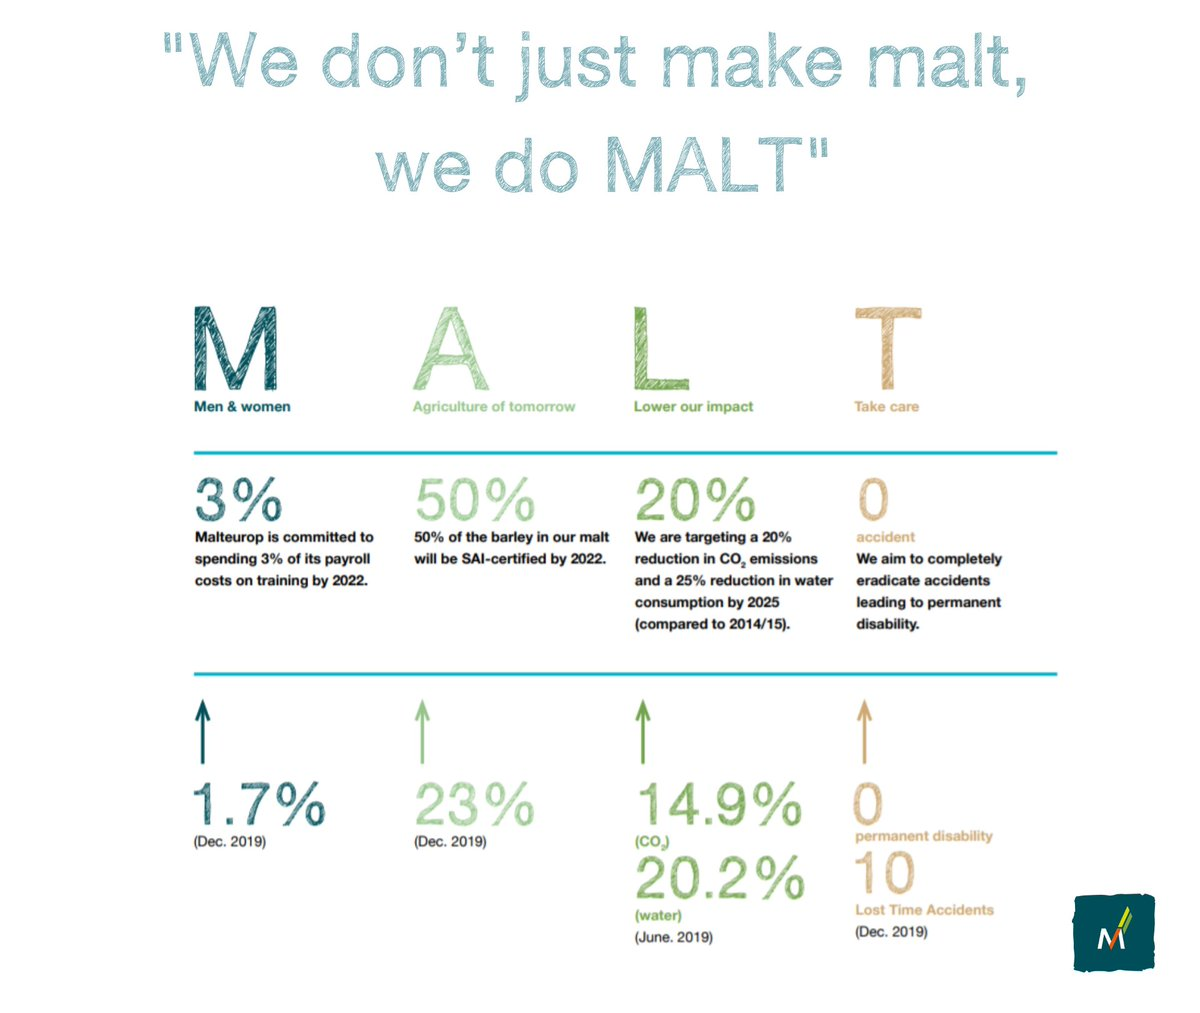 """📢""""Malteurop 1st global full #CSR report 2019 is now available in digital version, discover our new CSR approach and some key figures"""" 📈🌾#barley #malt #beer  🇬🇧https://t.co/0HxRmqy9h5 🇫🇷 https://t.co/umZ8O5mIEO https://t.co/dt0HUHGPMZ"""